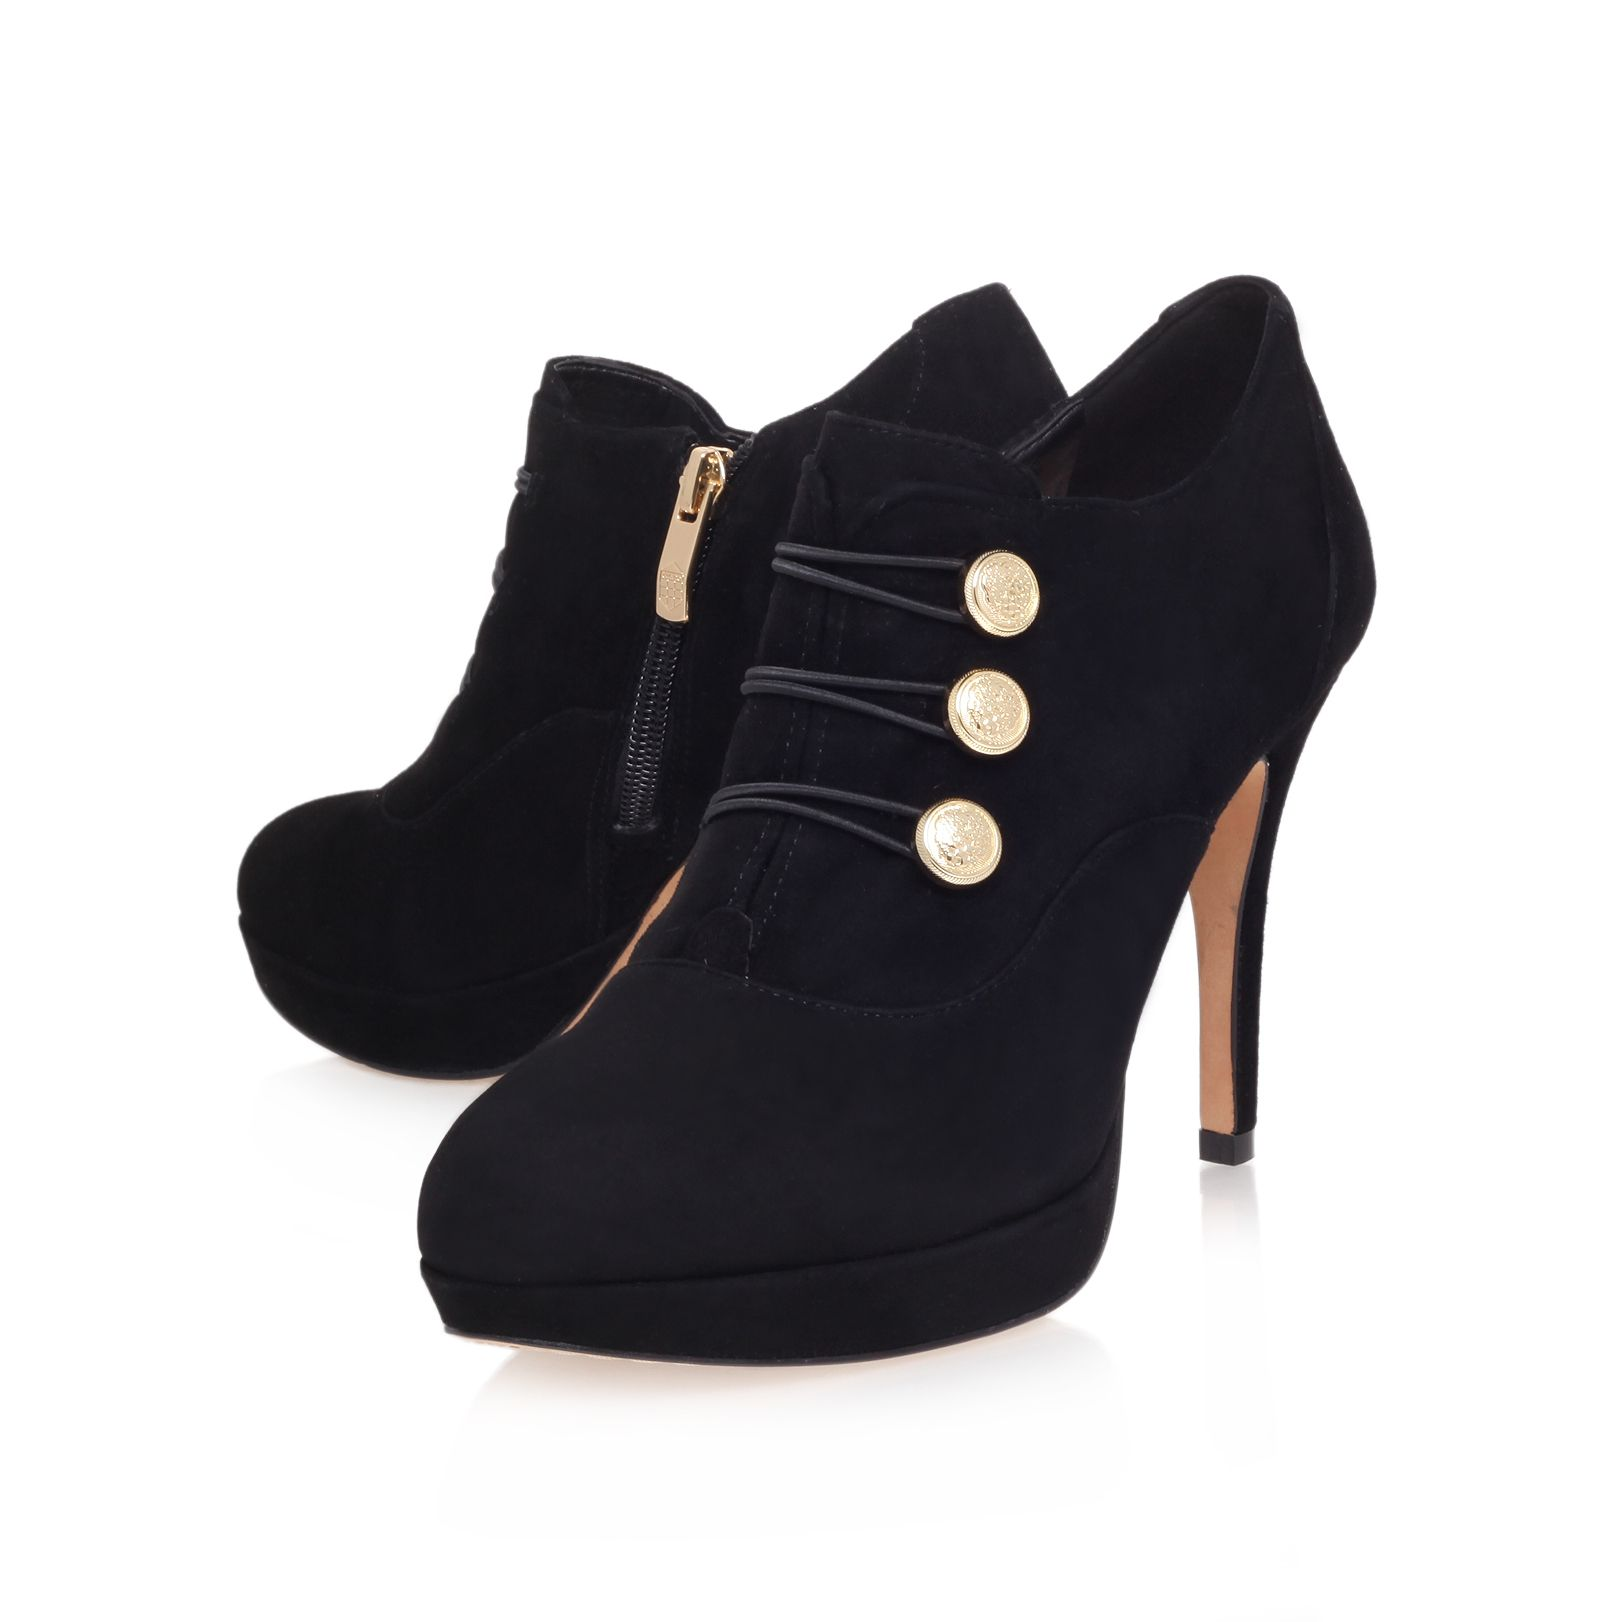 Elizah high heel shoe boots